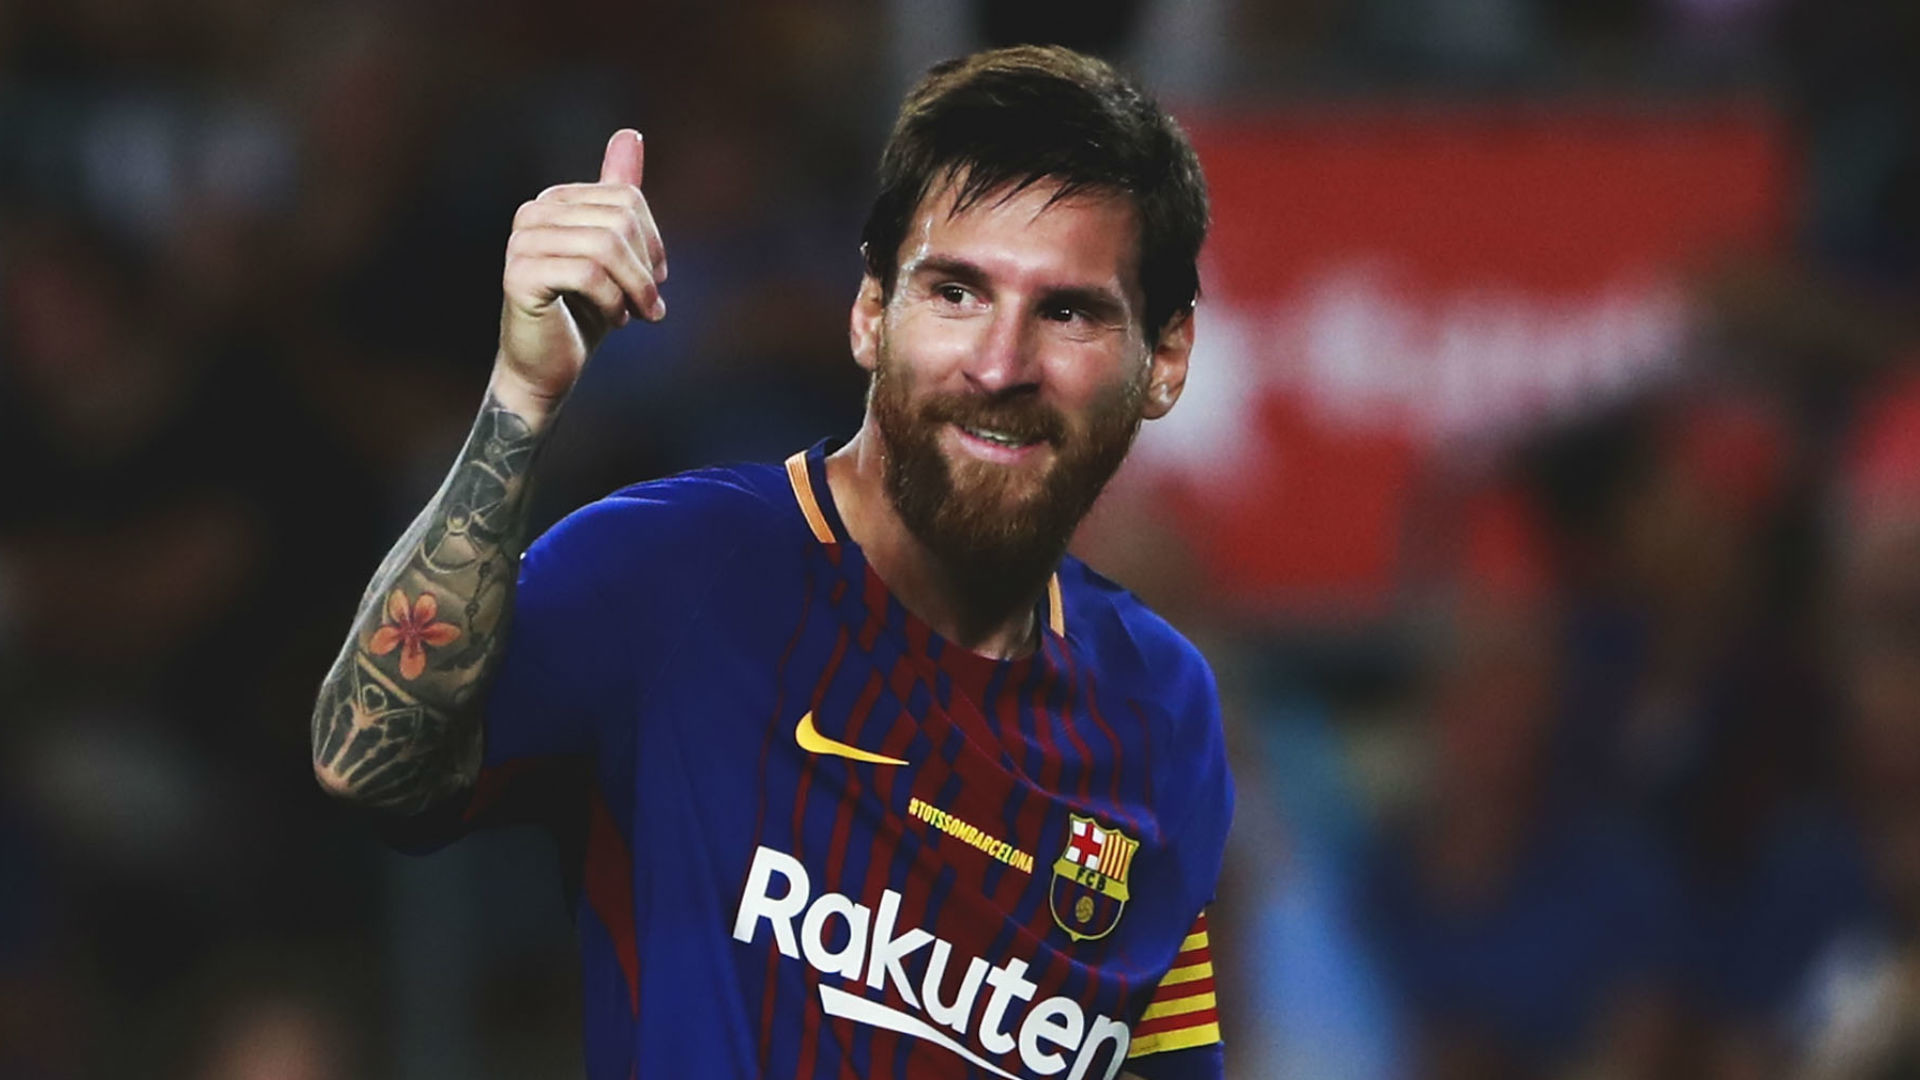 Leo Messi Lionel Messi Wallpapers 2018 81 43 Images